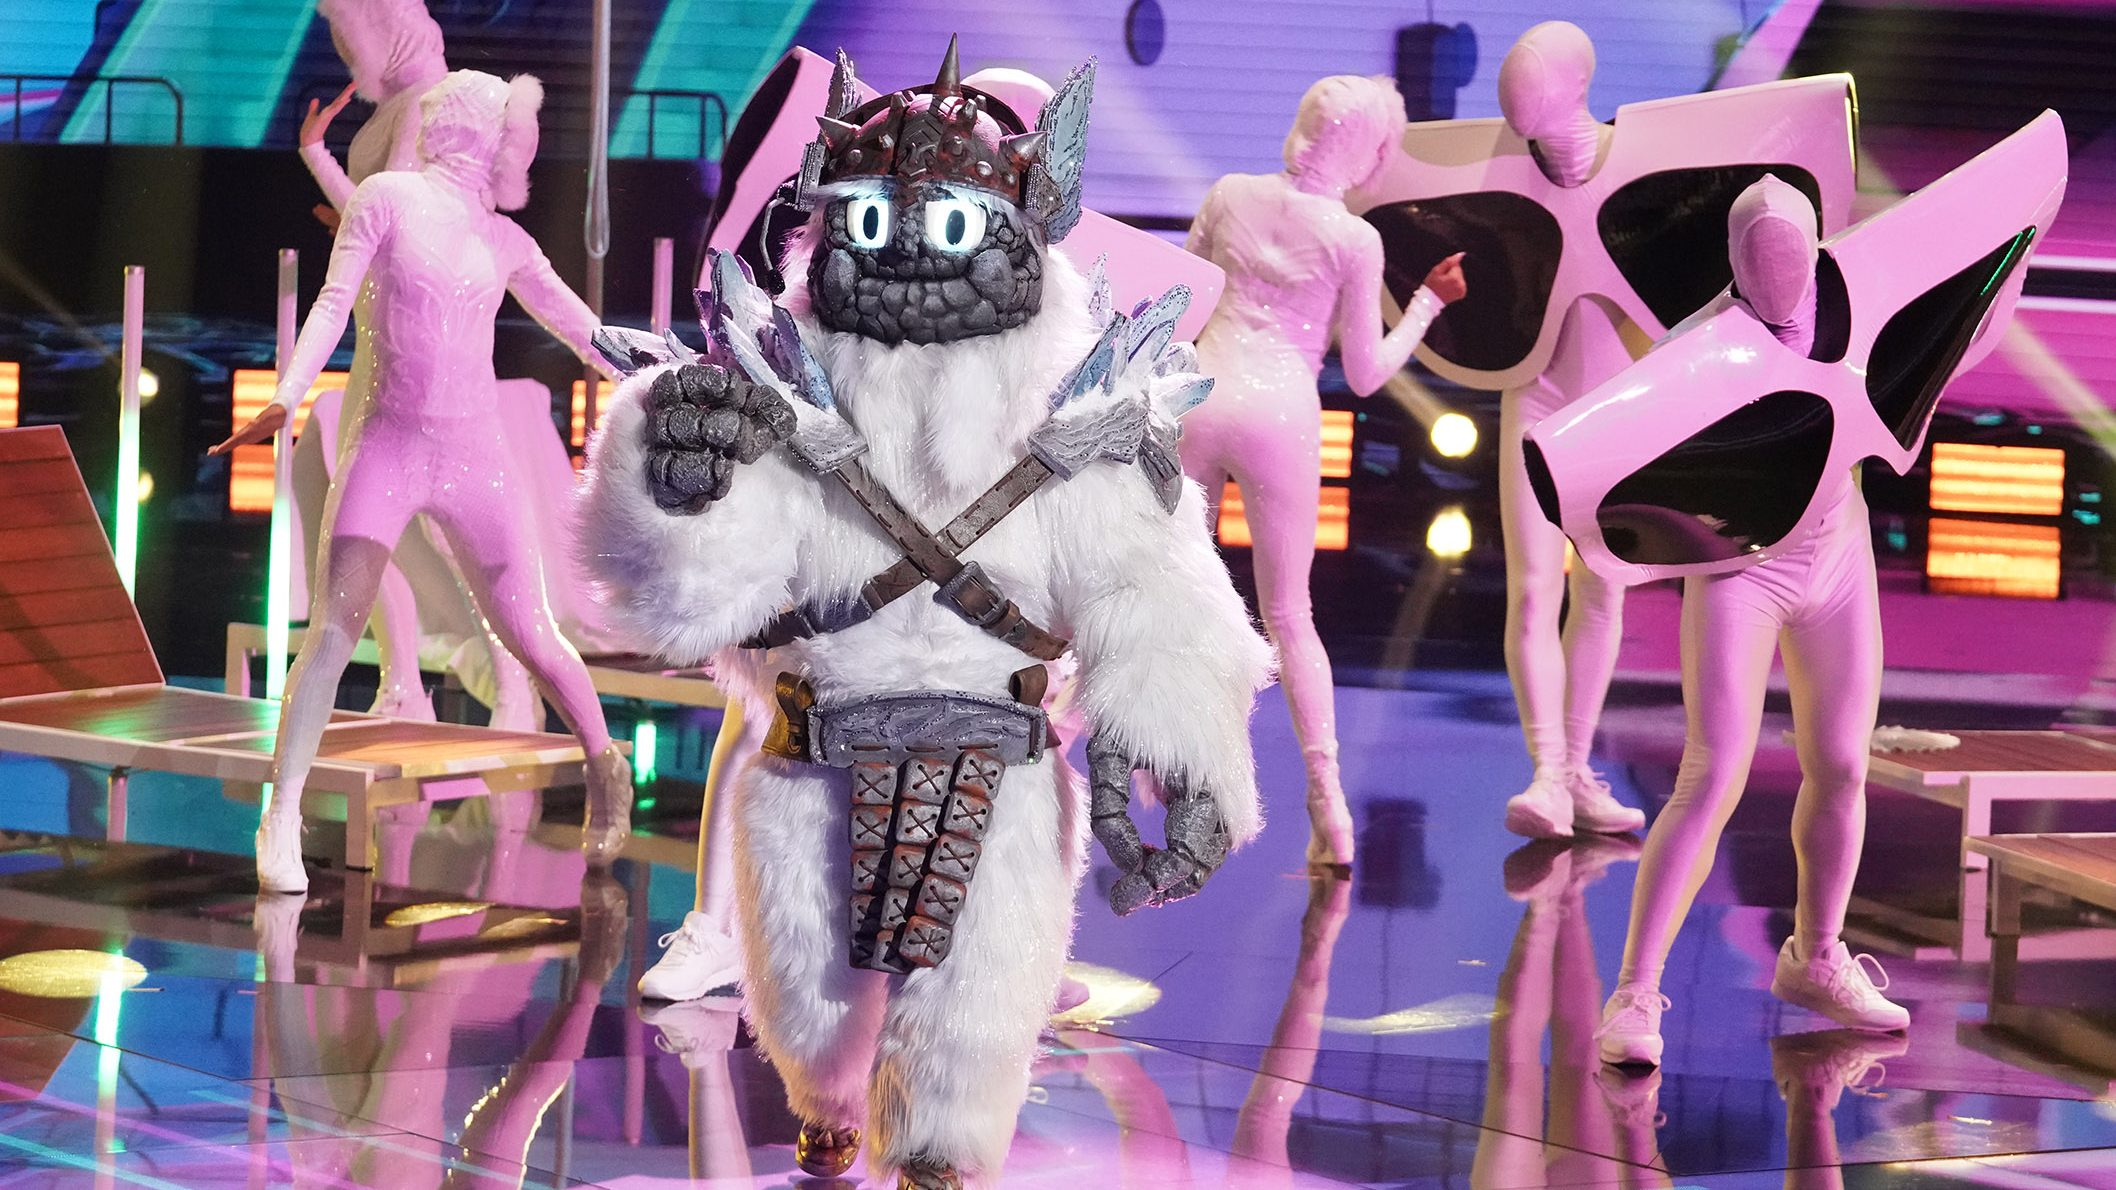 'The Masked Singer' Reveals the Identity of the Yeti and Cluedle-Doo: Here Are the Stars Under the Masks thumbnail